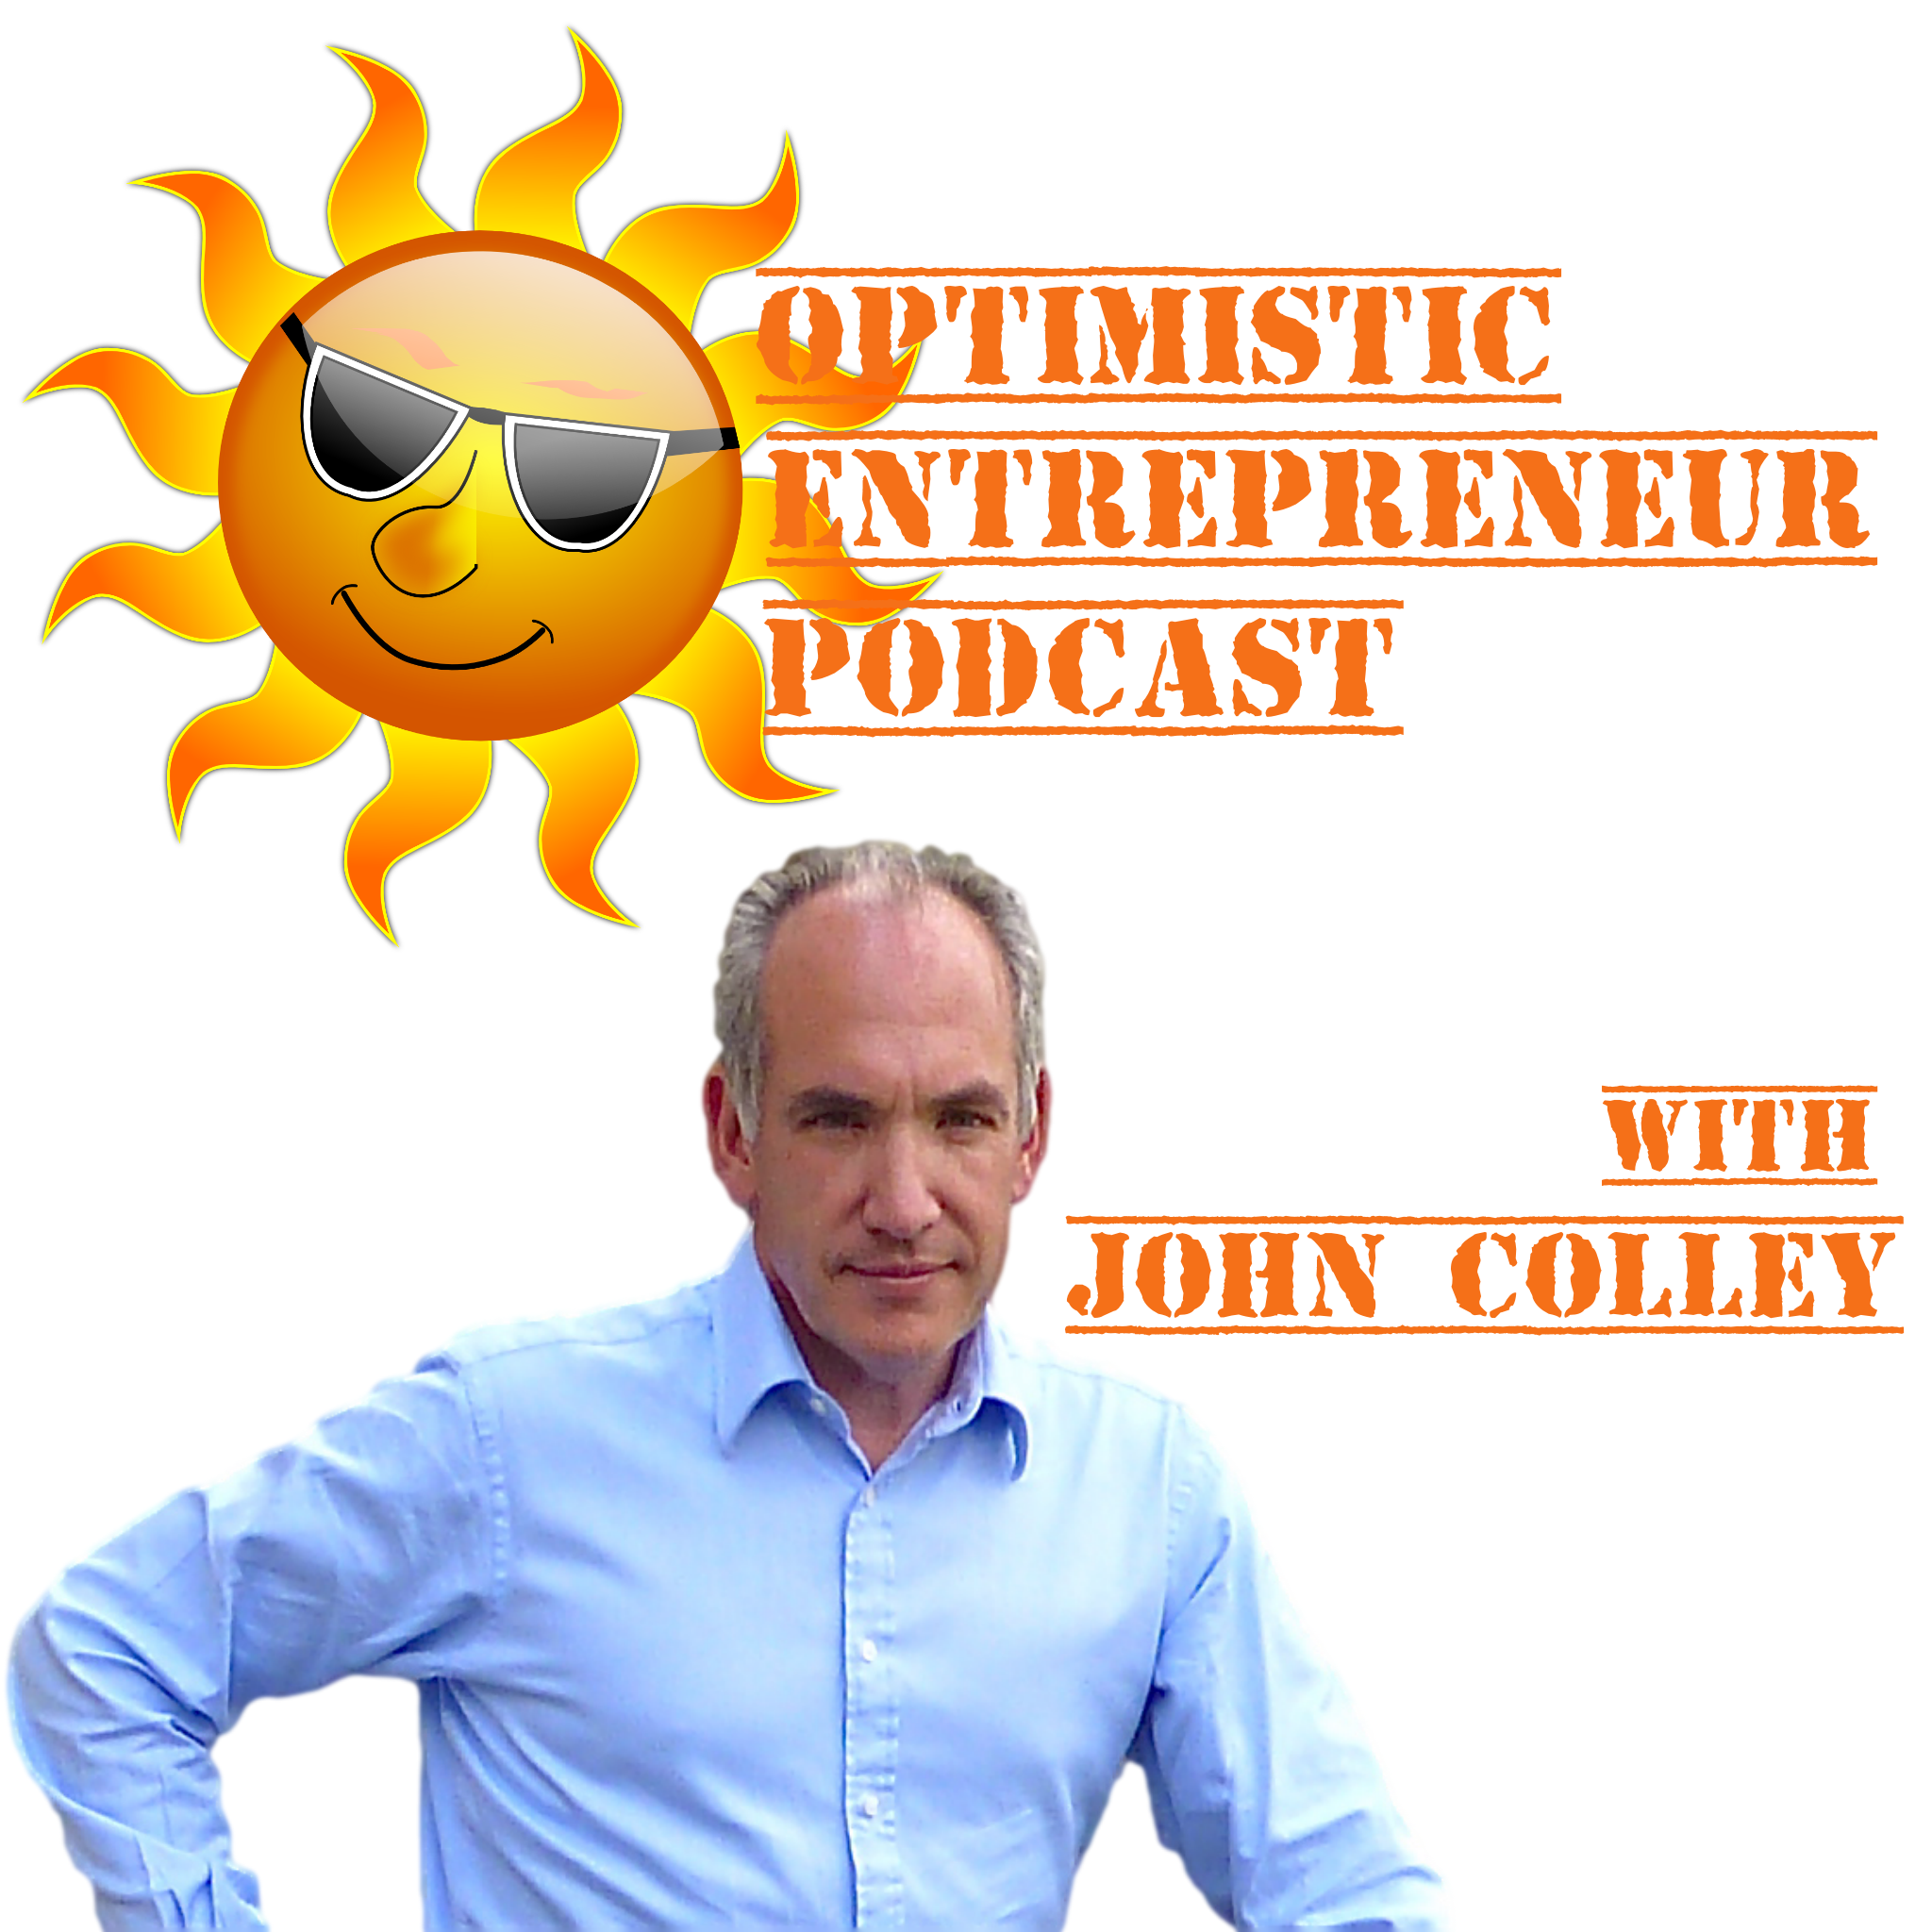 Optimistic Entrepreneur Podcast